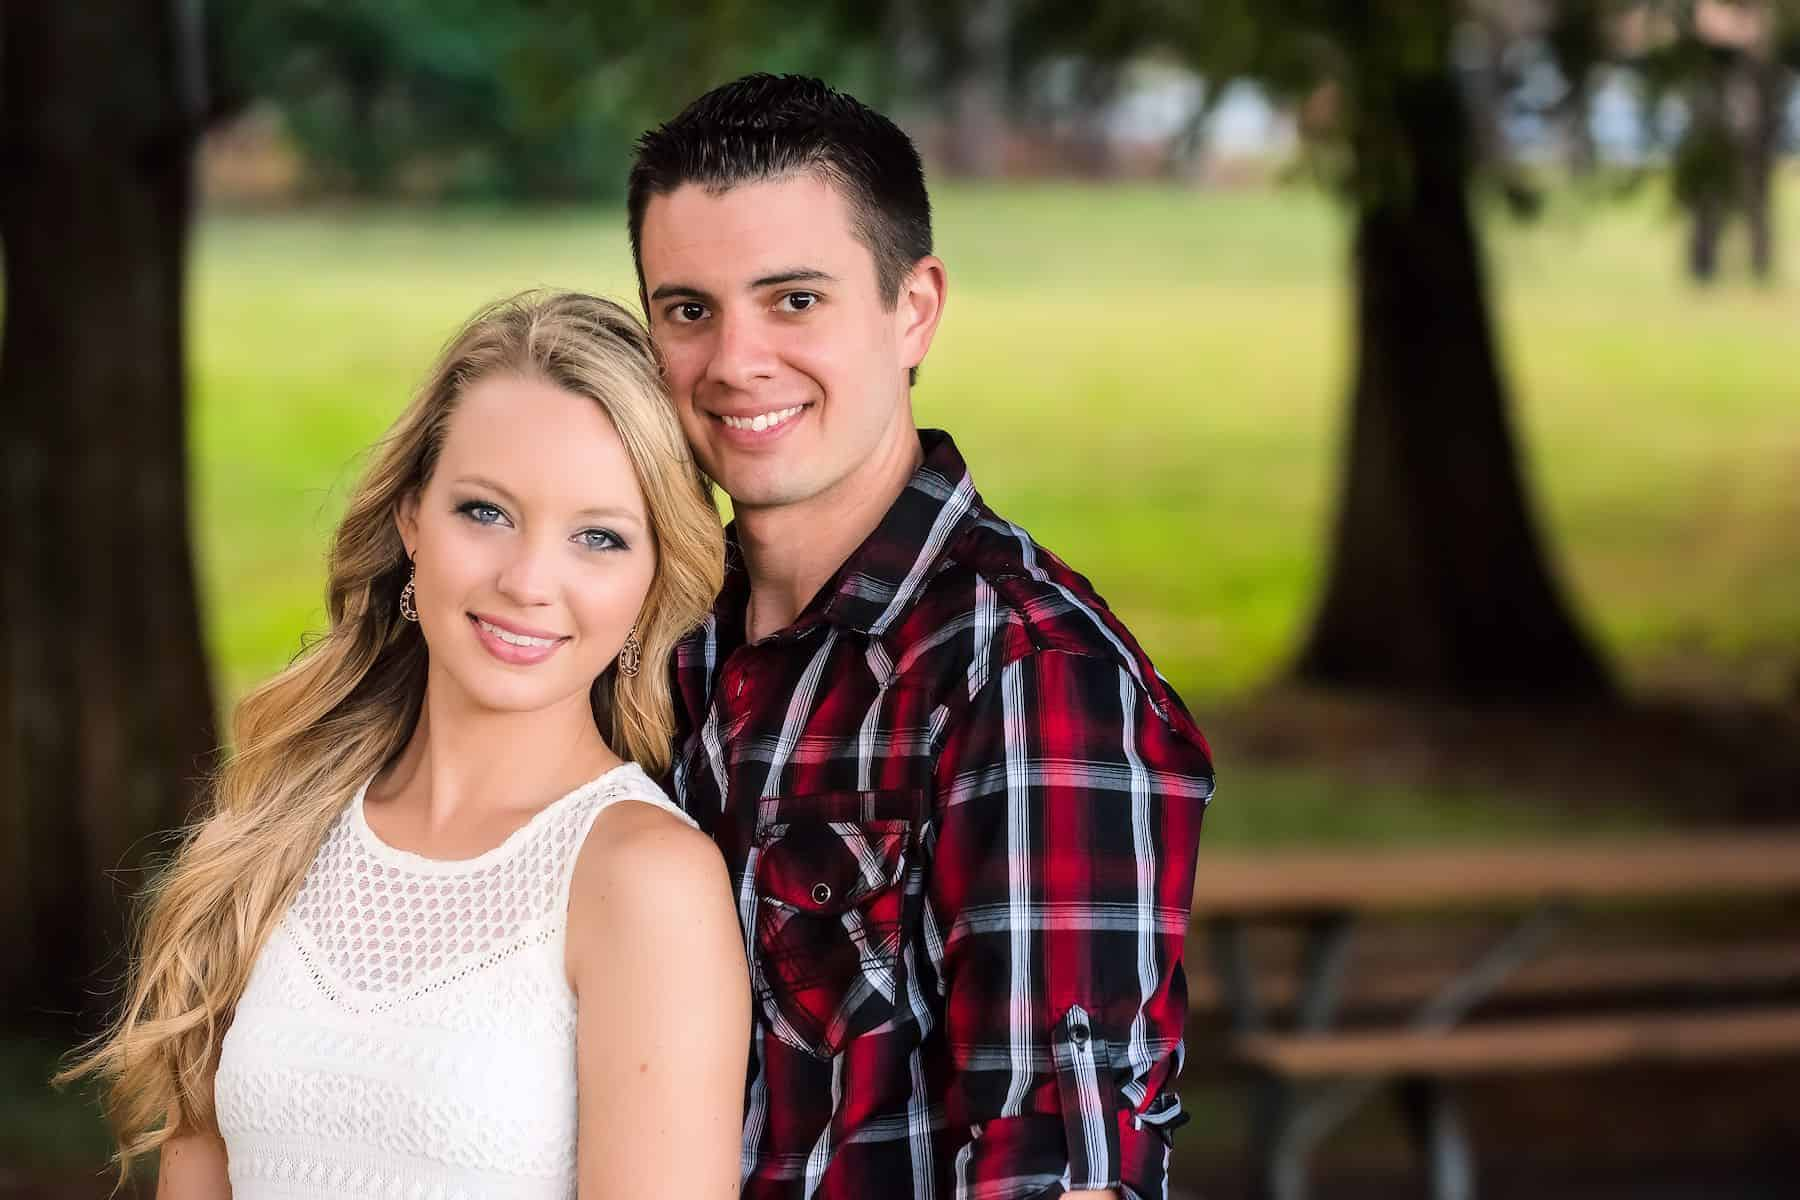 Couples portrait during their Engagement Session